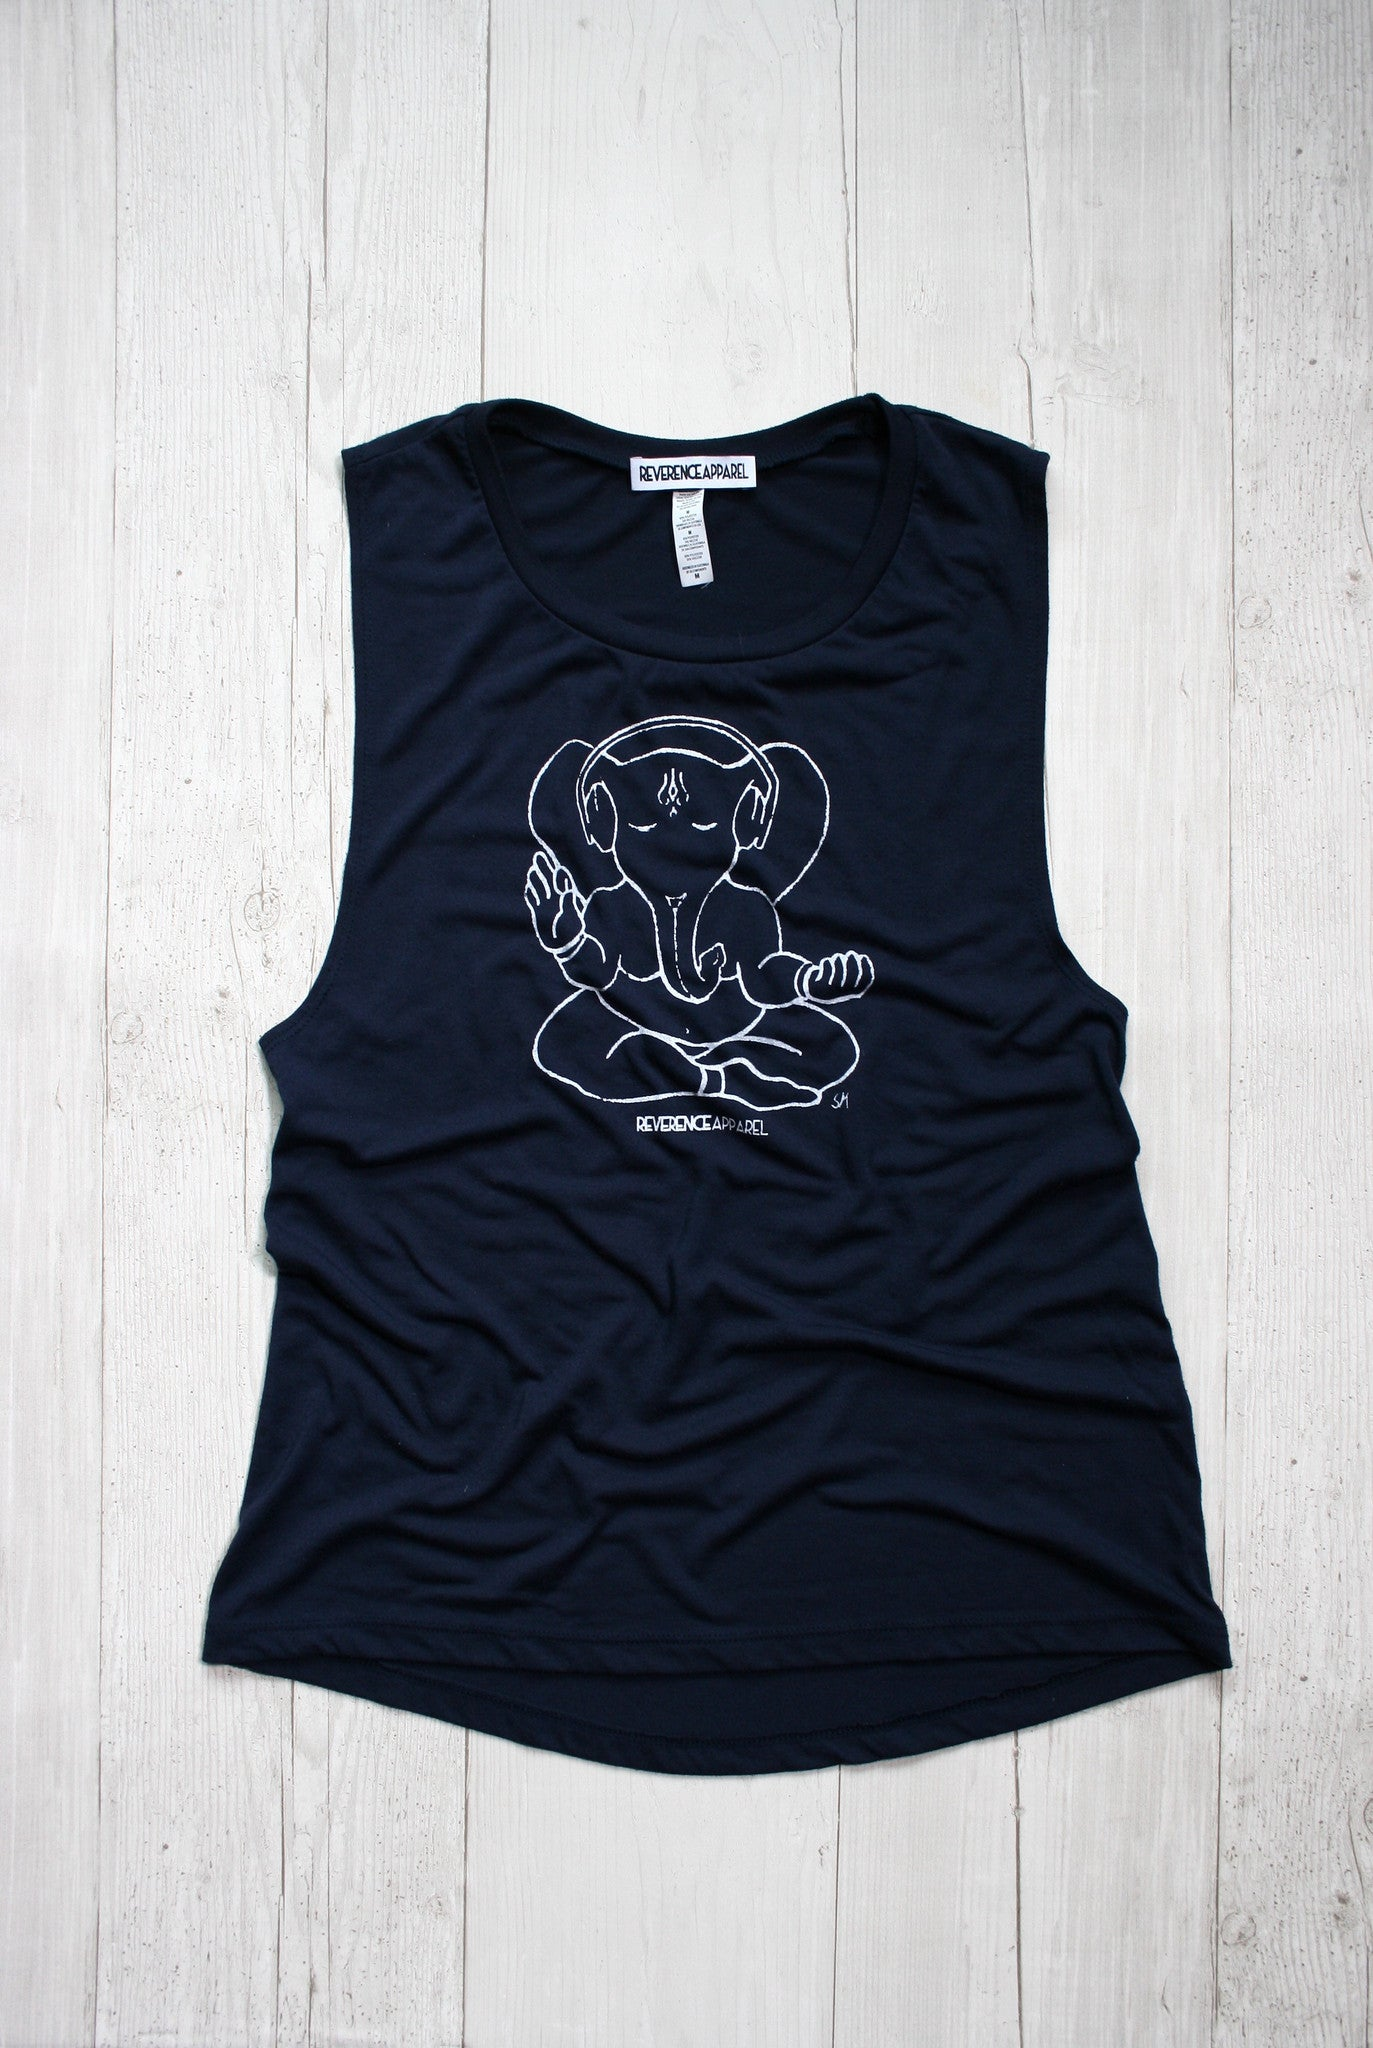 In Tune Ganesh Muscle Tank, , Tank, Reverence Apparel, Reverence Apparel   - 1